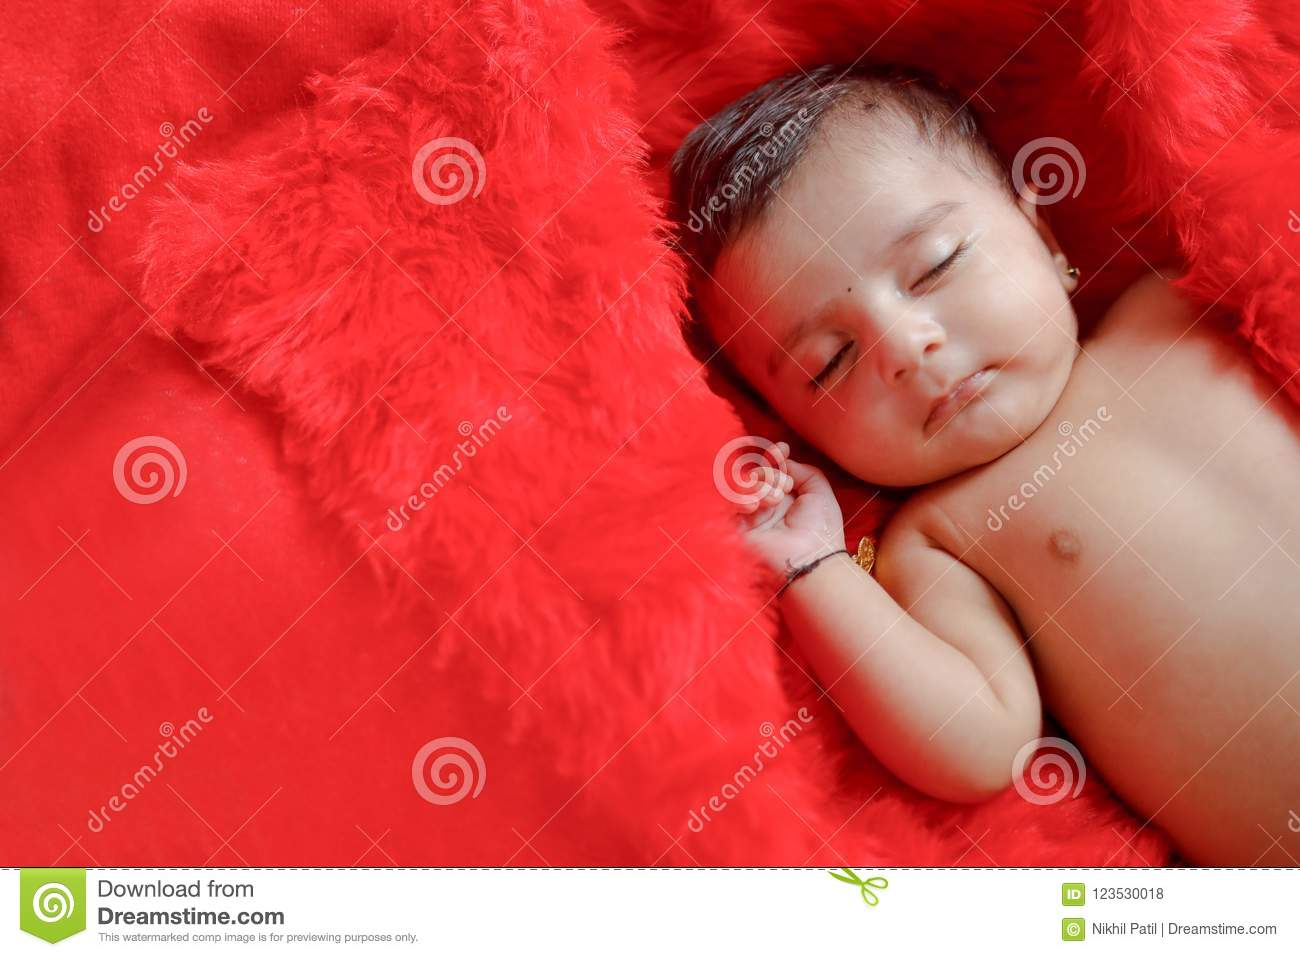 Cute Indian Baby Girl Sleeping On Bed Stock Photo Image Of Newborn Beautiful 123530018